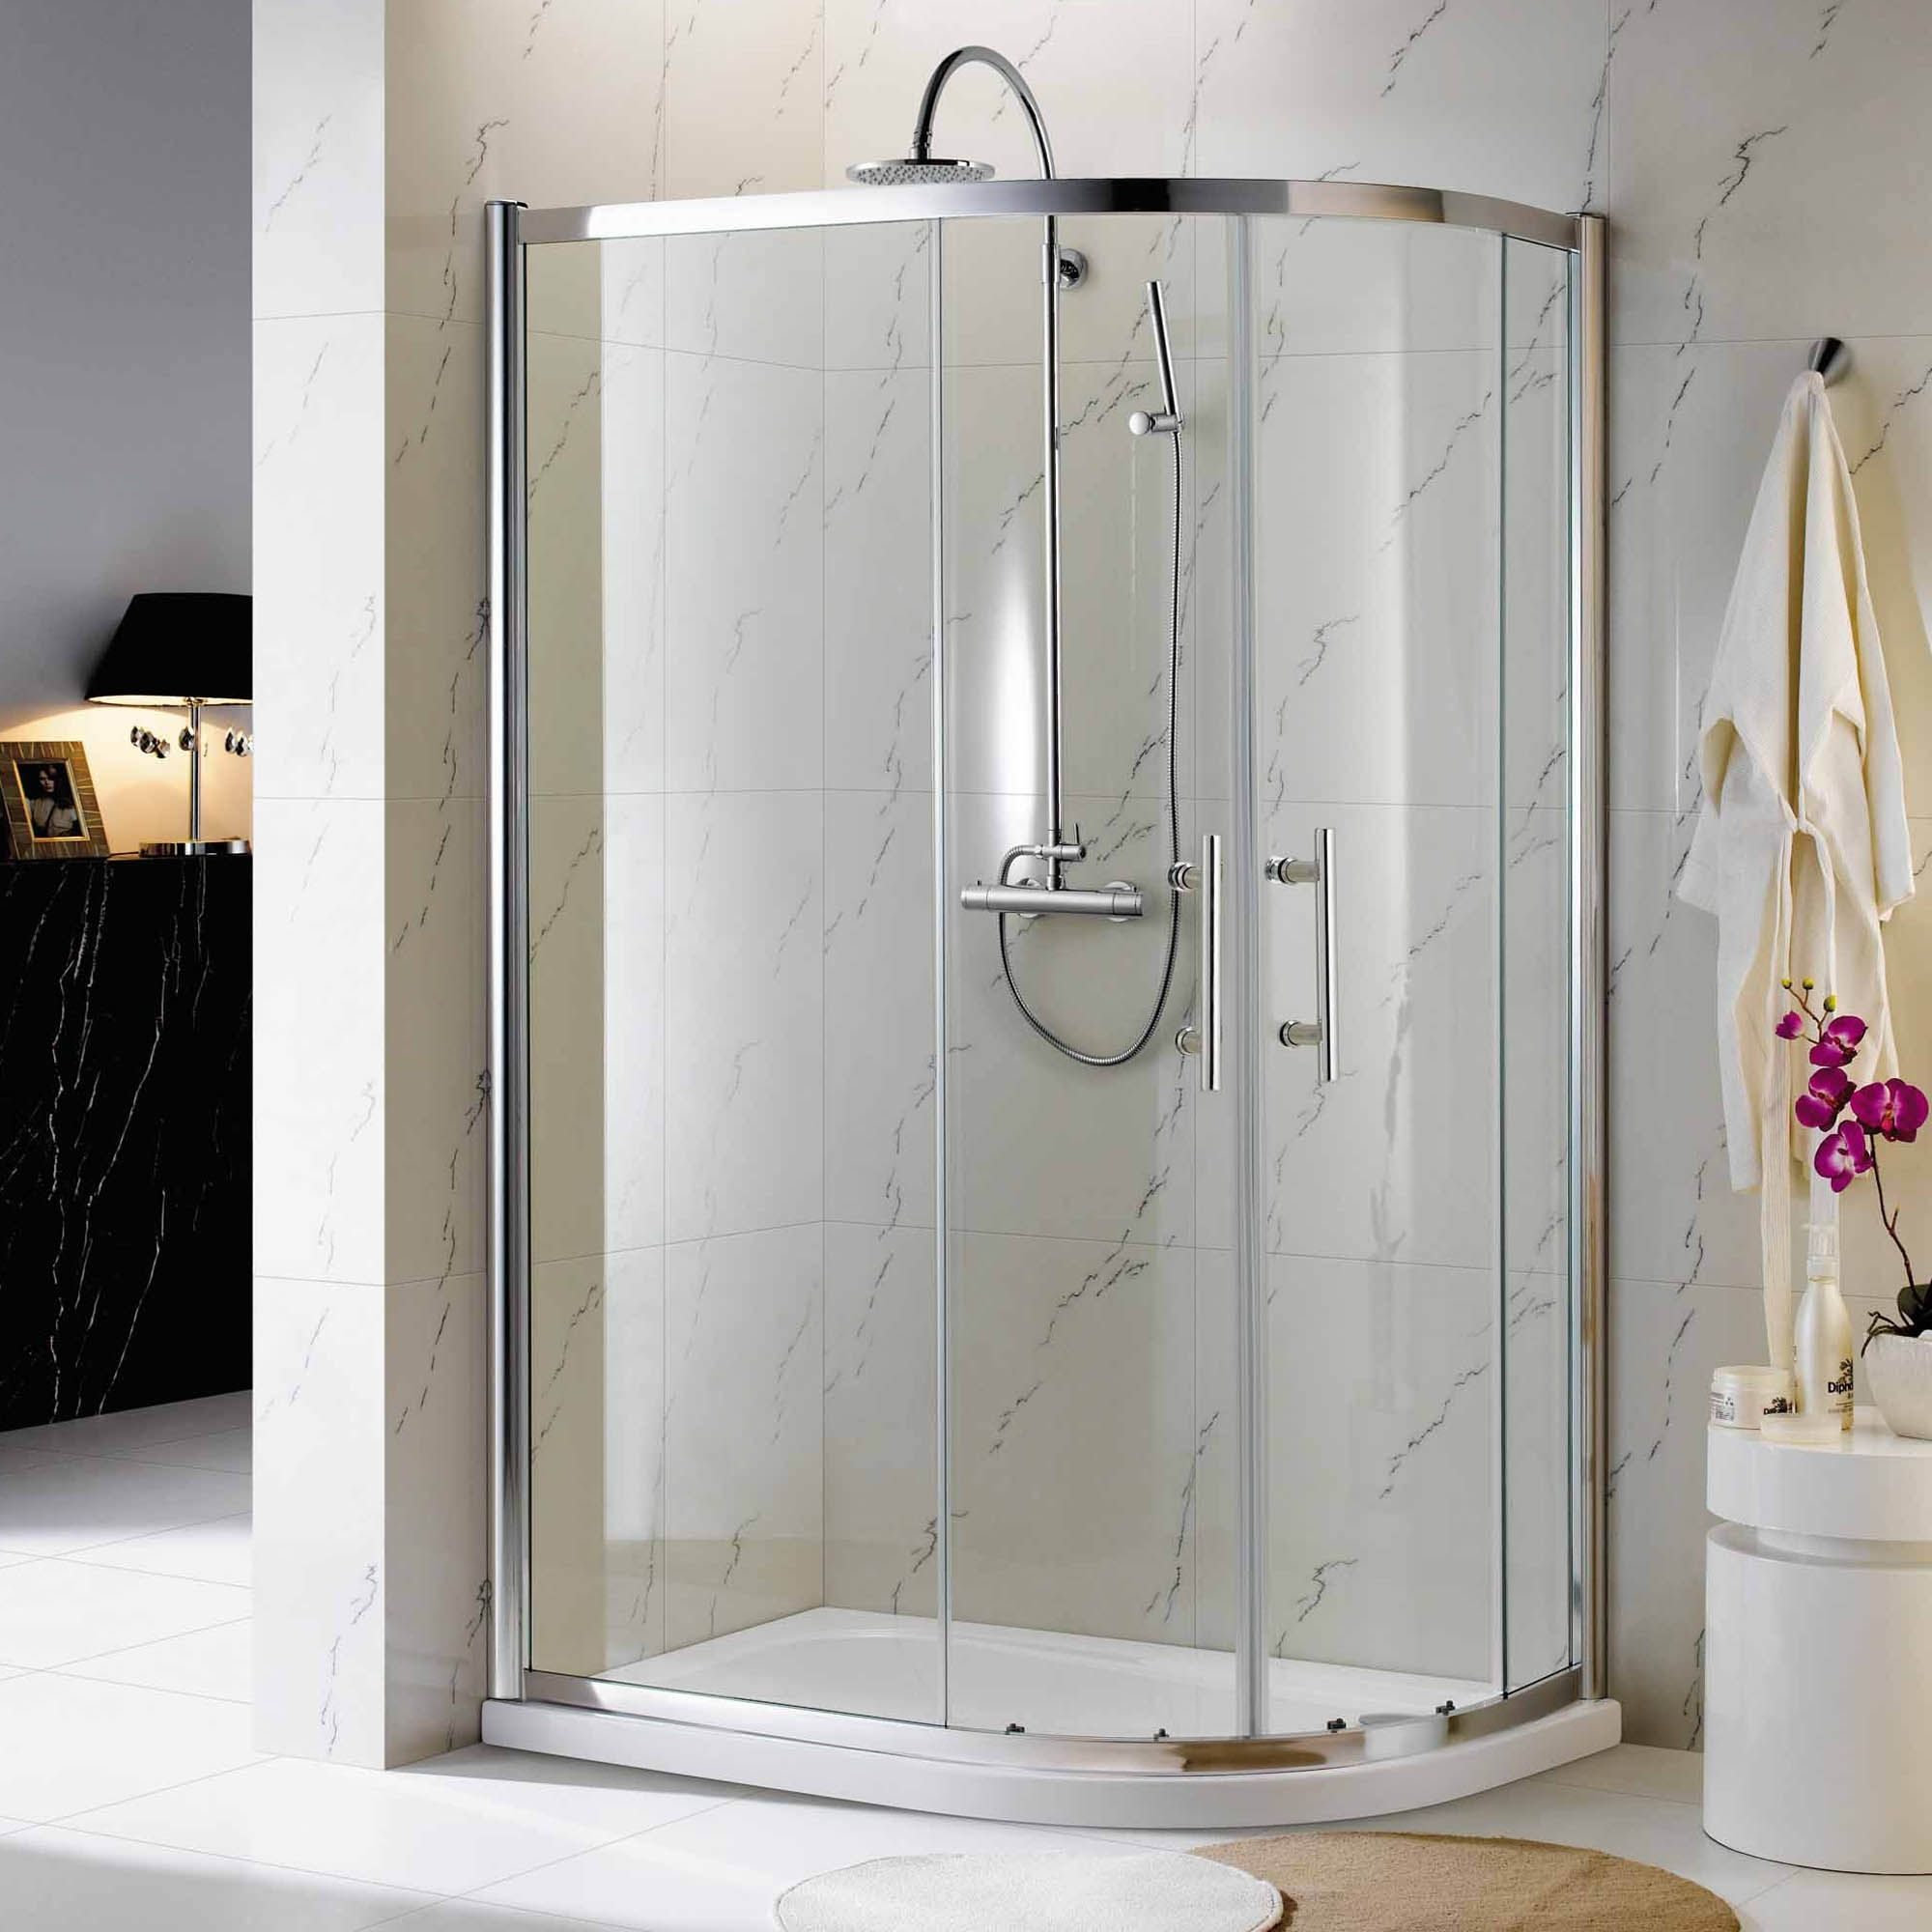 stupendous depot one surround images home stud compact piece bathroom designs combo bathtub to direct enclosures menards shower kit tub beautiful